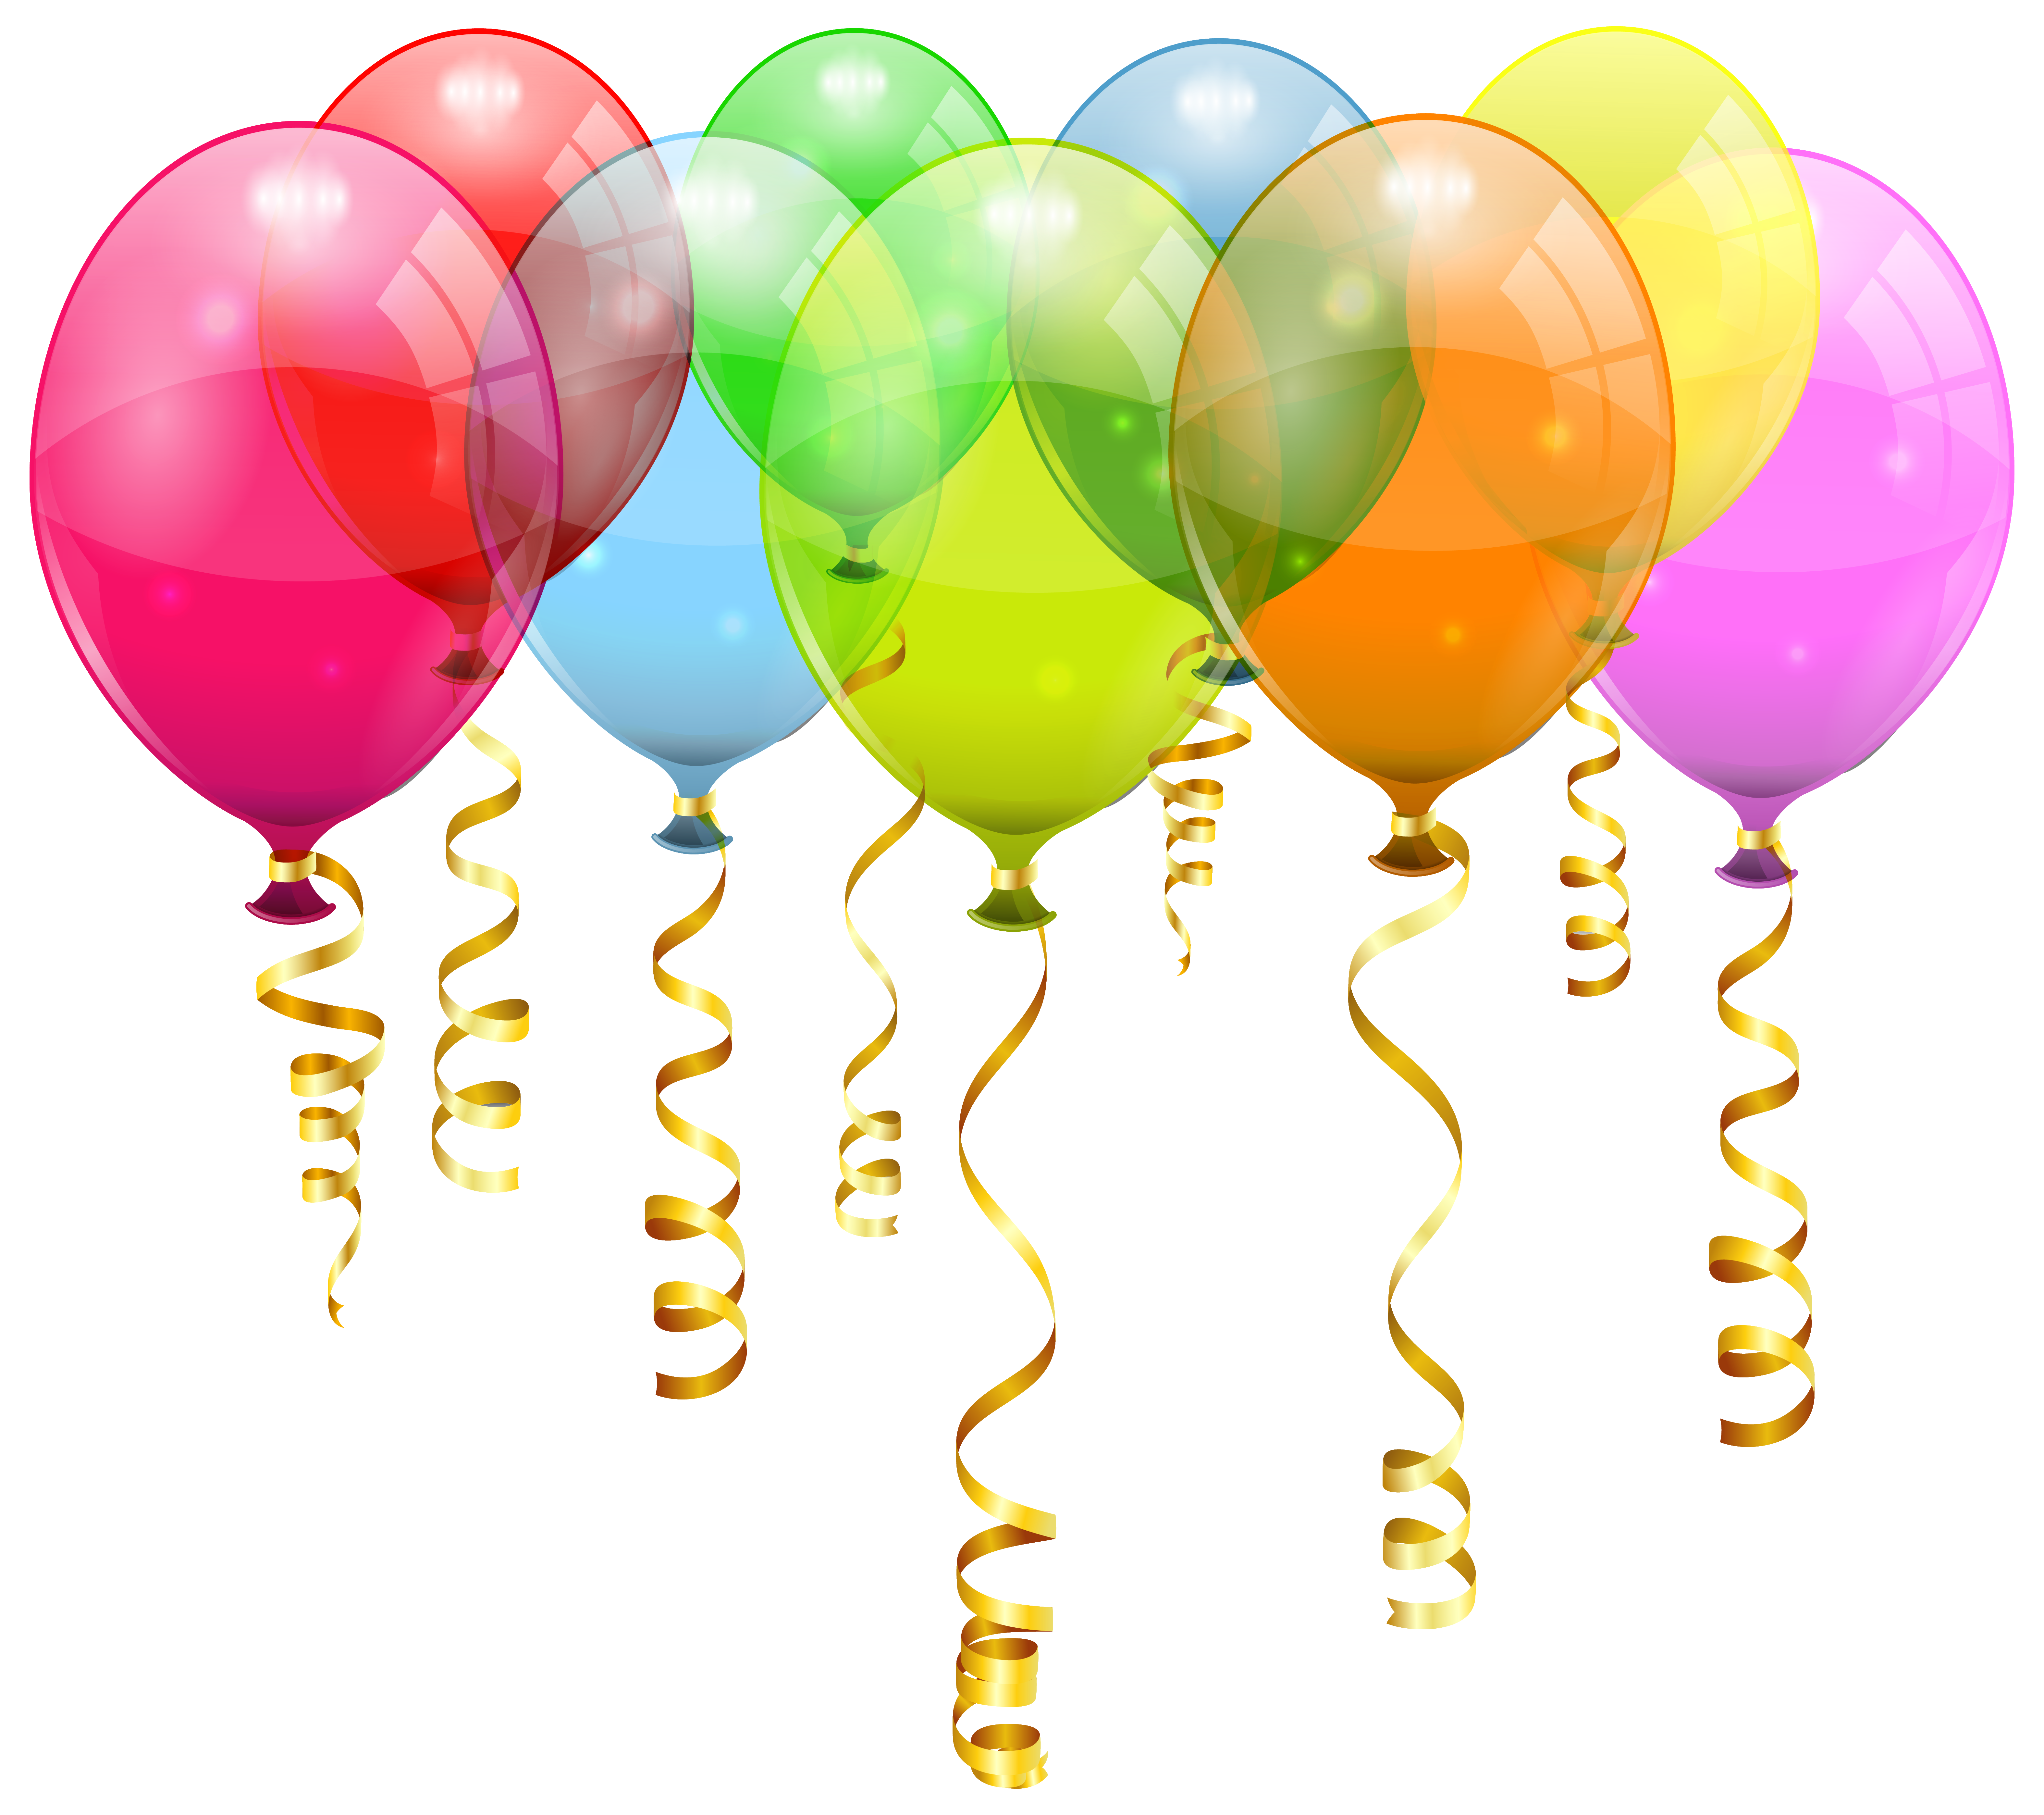 Colorful balloon png image. Key clipart bunch